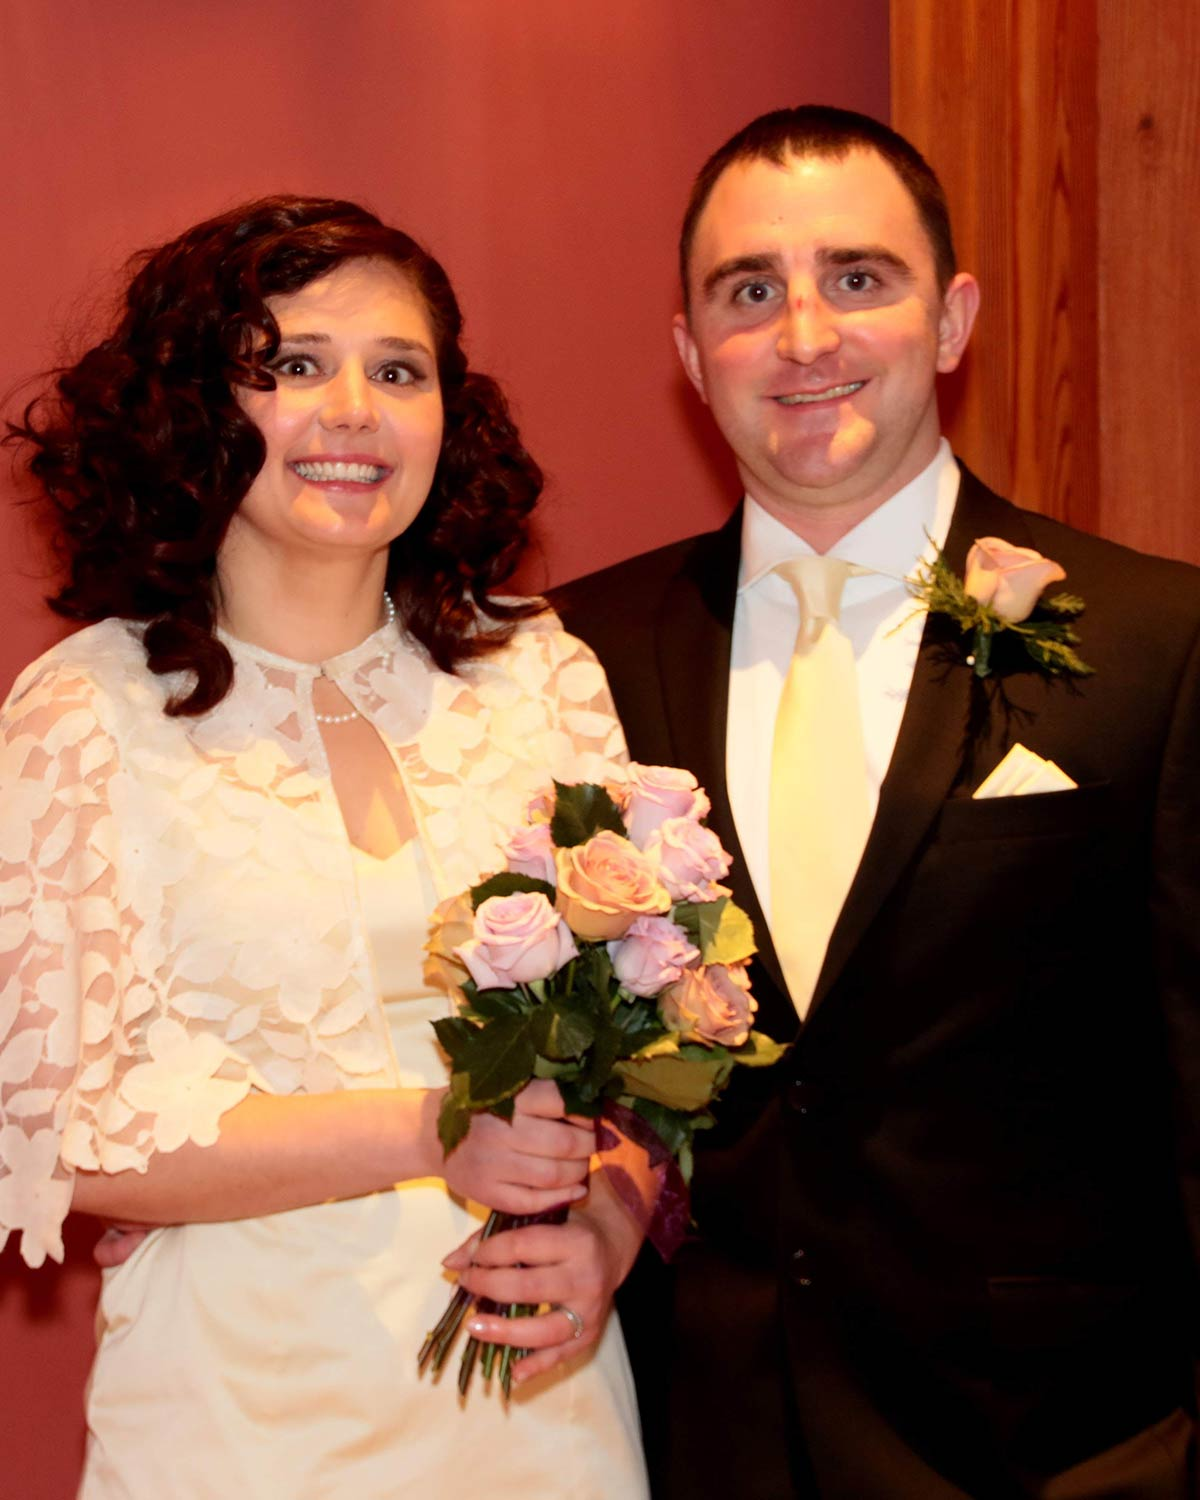 Bridgette and Isaac on their wedding day